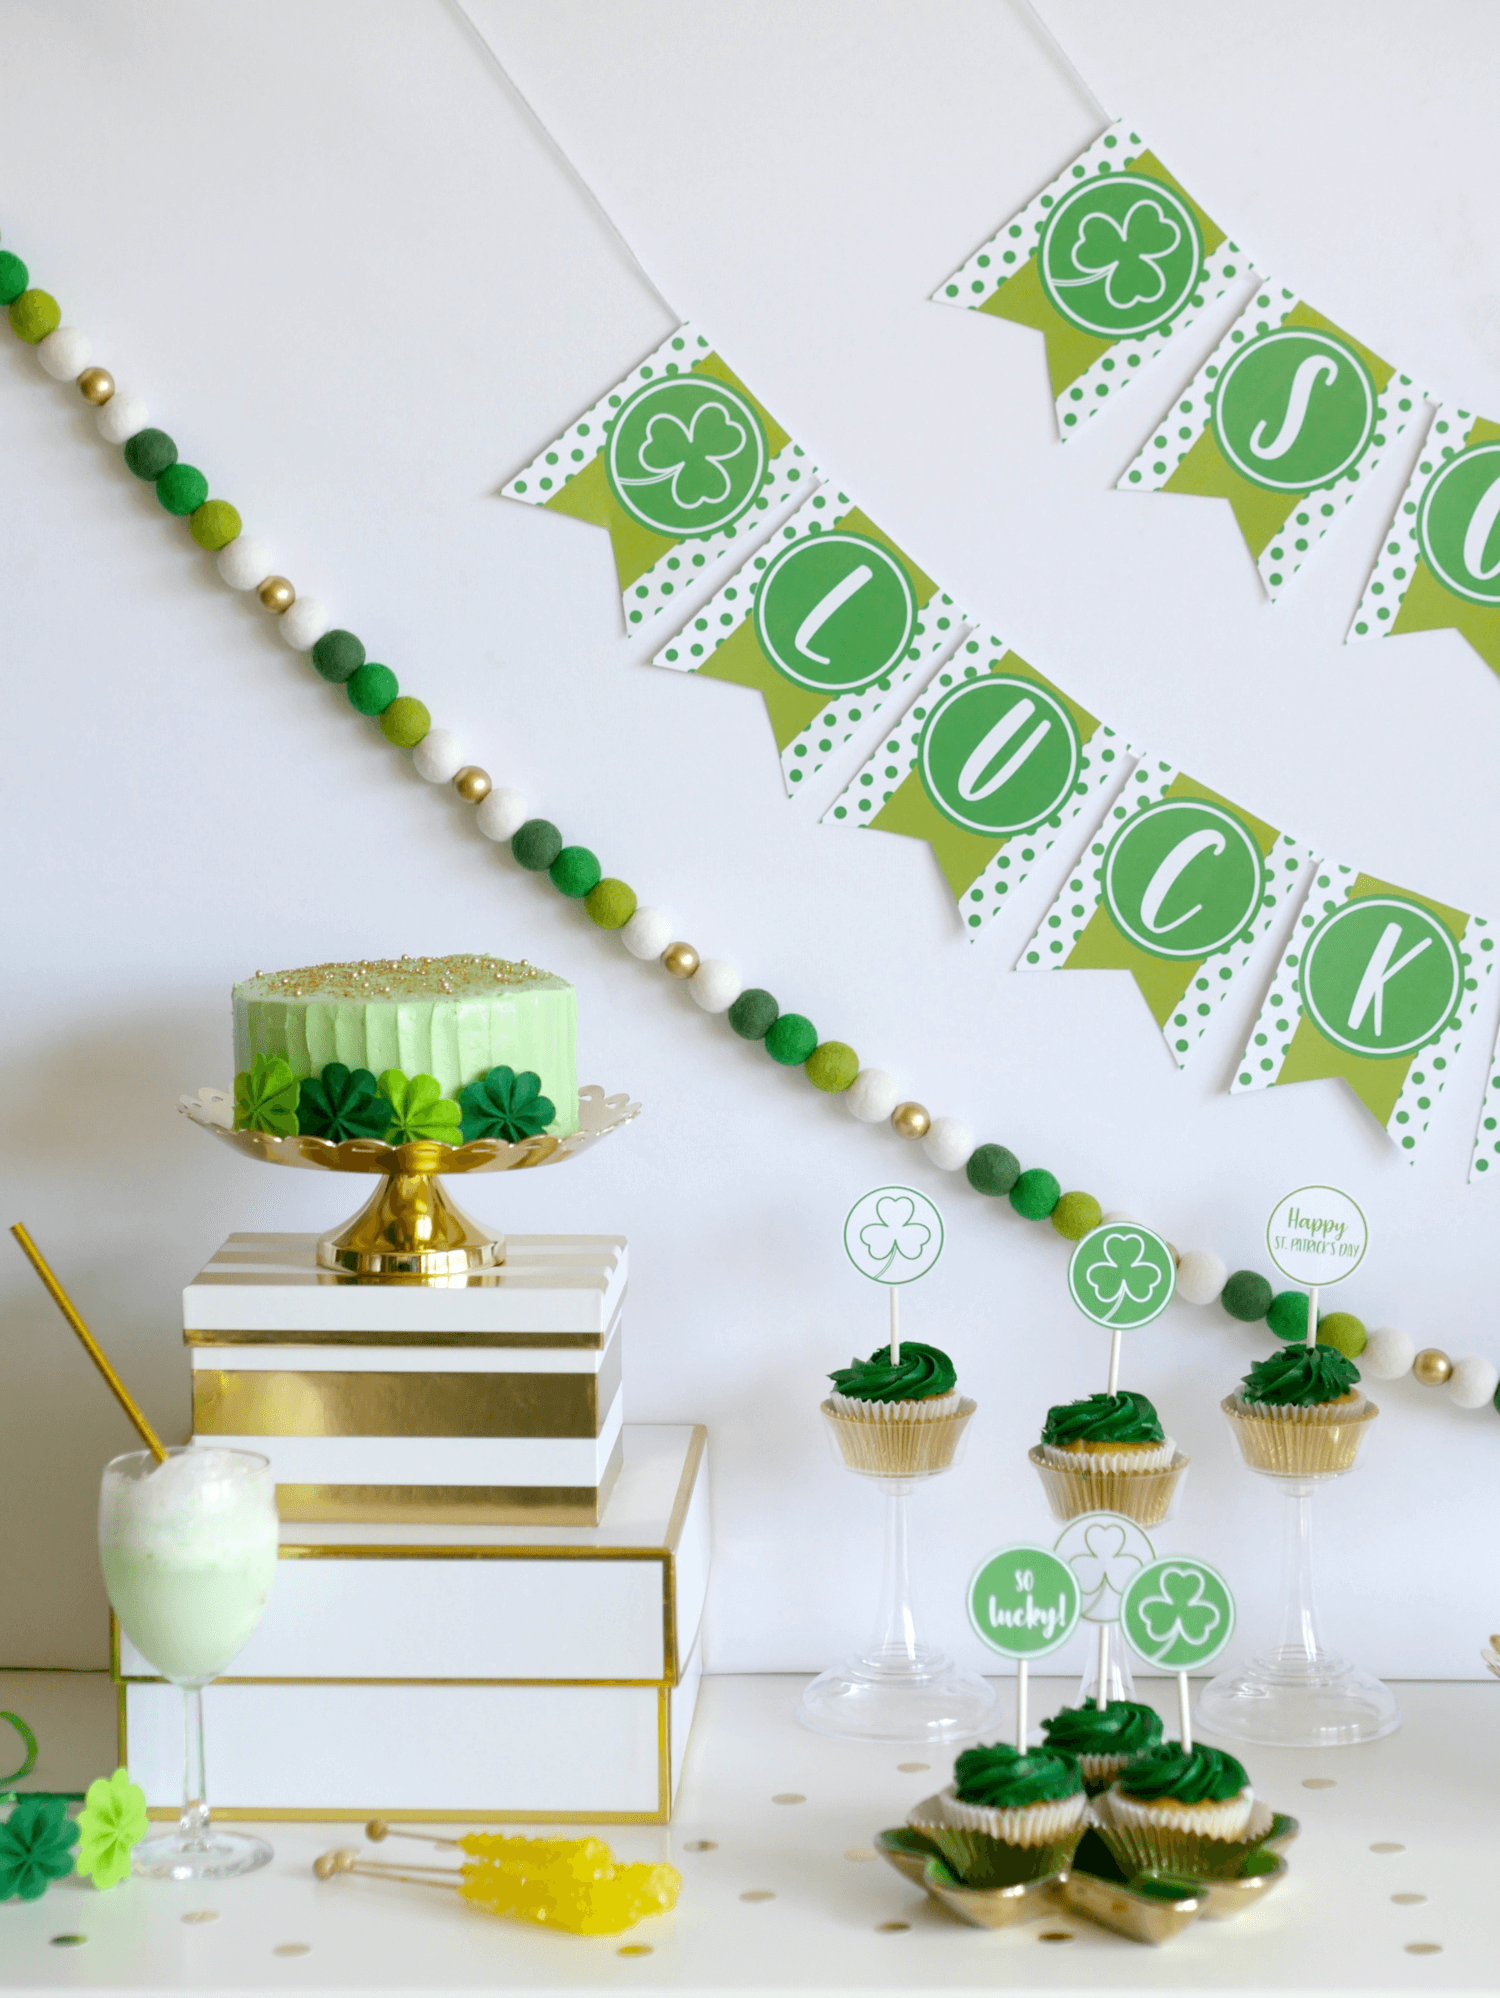 Saint Patricks Day Party Color Palette: shades of green including mint with white, gold and a pop of yellow with the rock candy. A sprinkling of gold circle confetti adds a fun decoration to the dessert table. See more from this St Patricks Day Party on Mint Event Design www.minteventdesign.com #partyideas #partydecorations #saintpatricksday #stpatricksday #desserttable